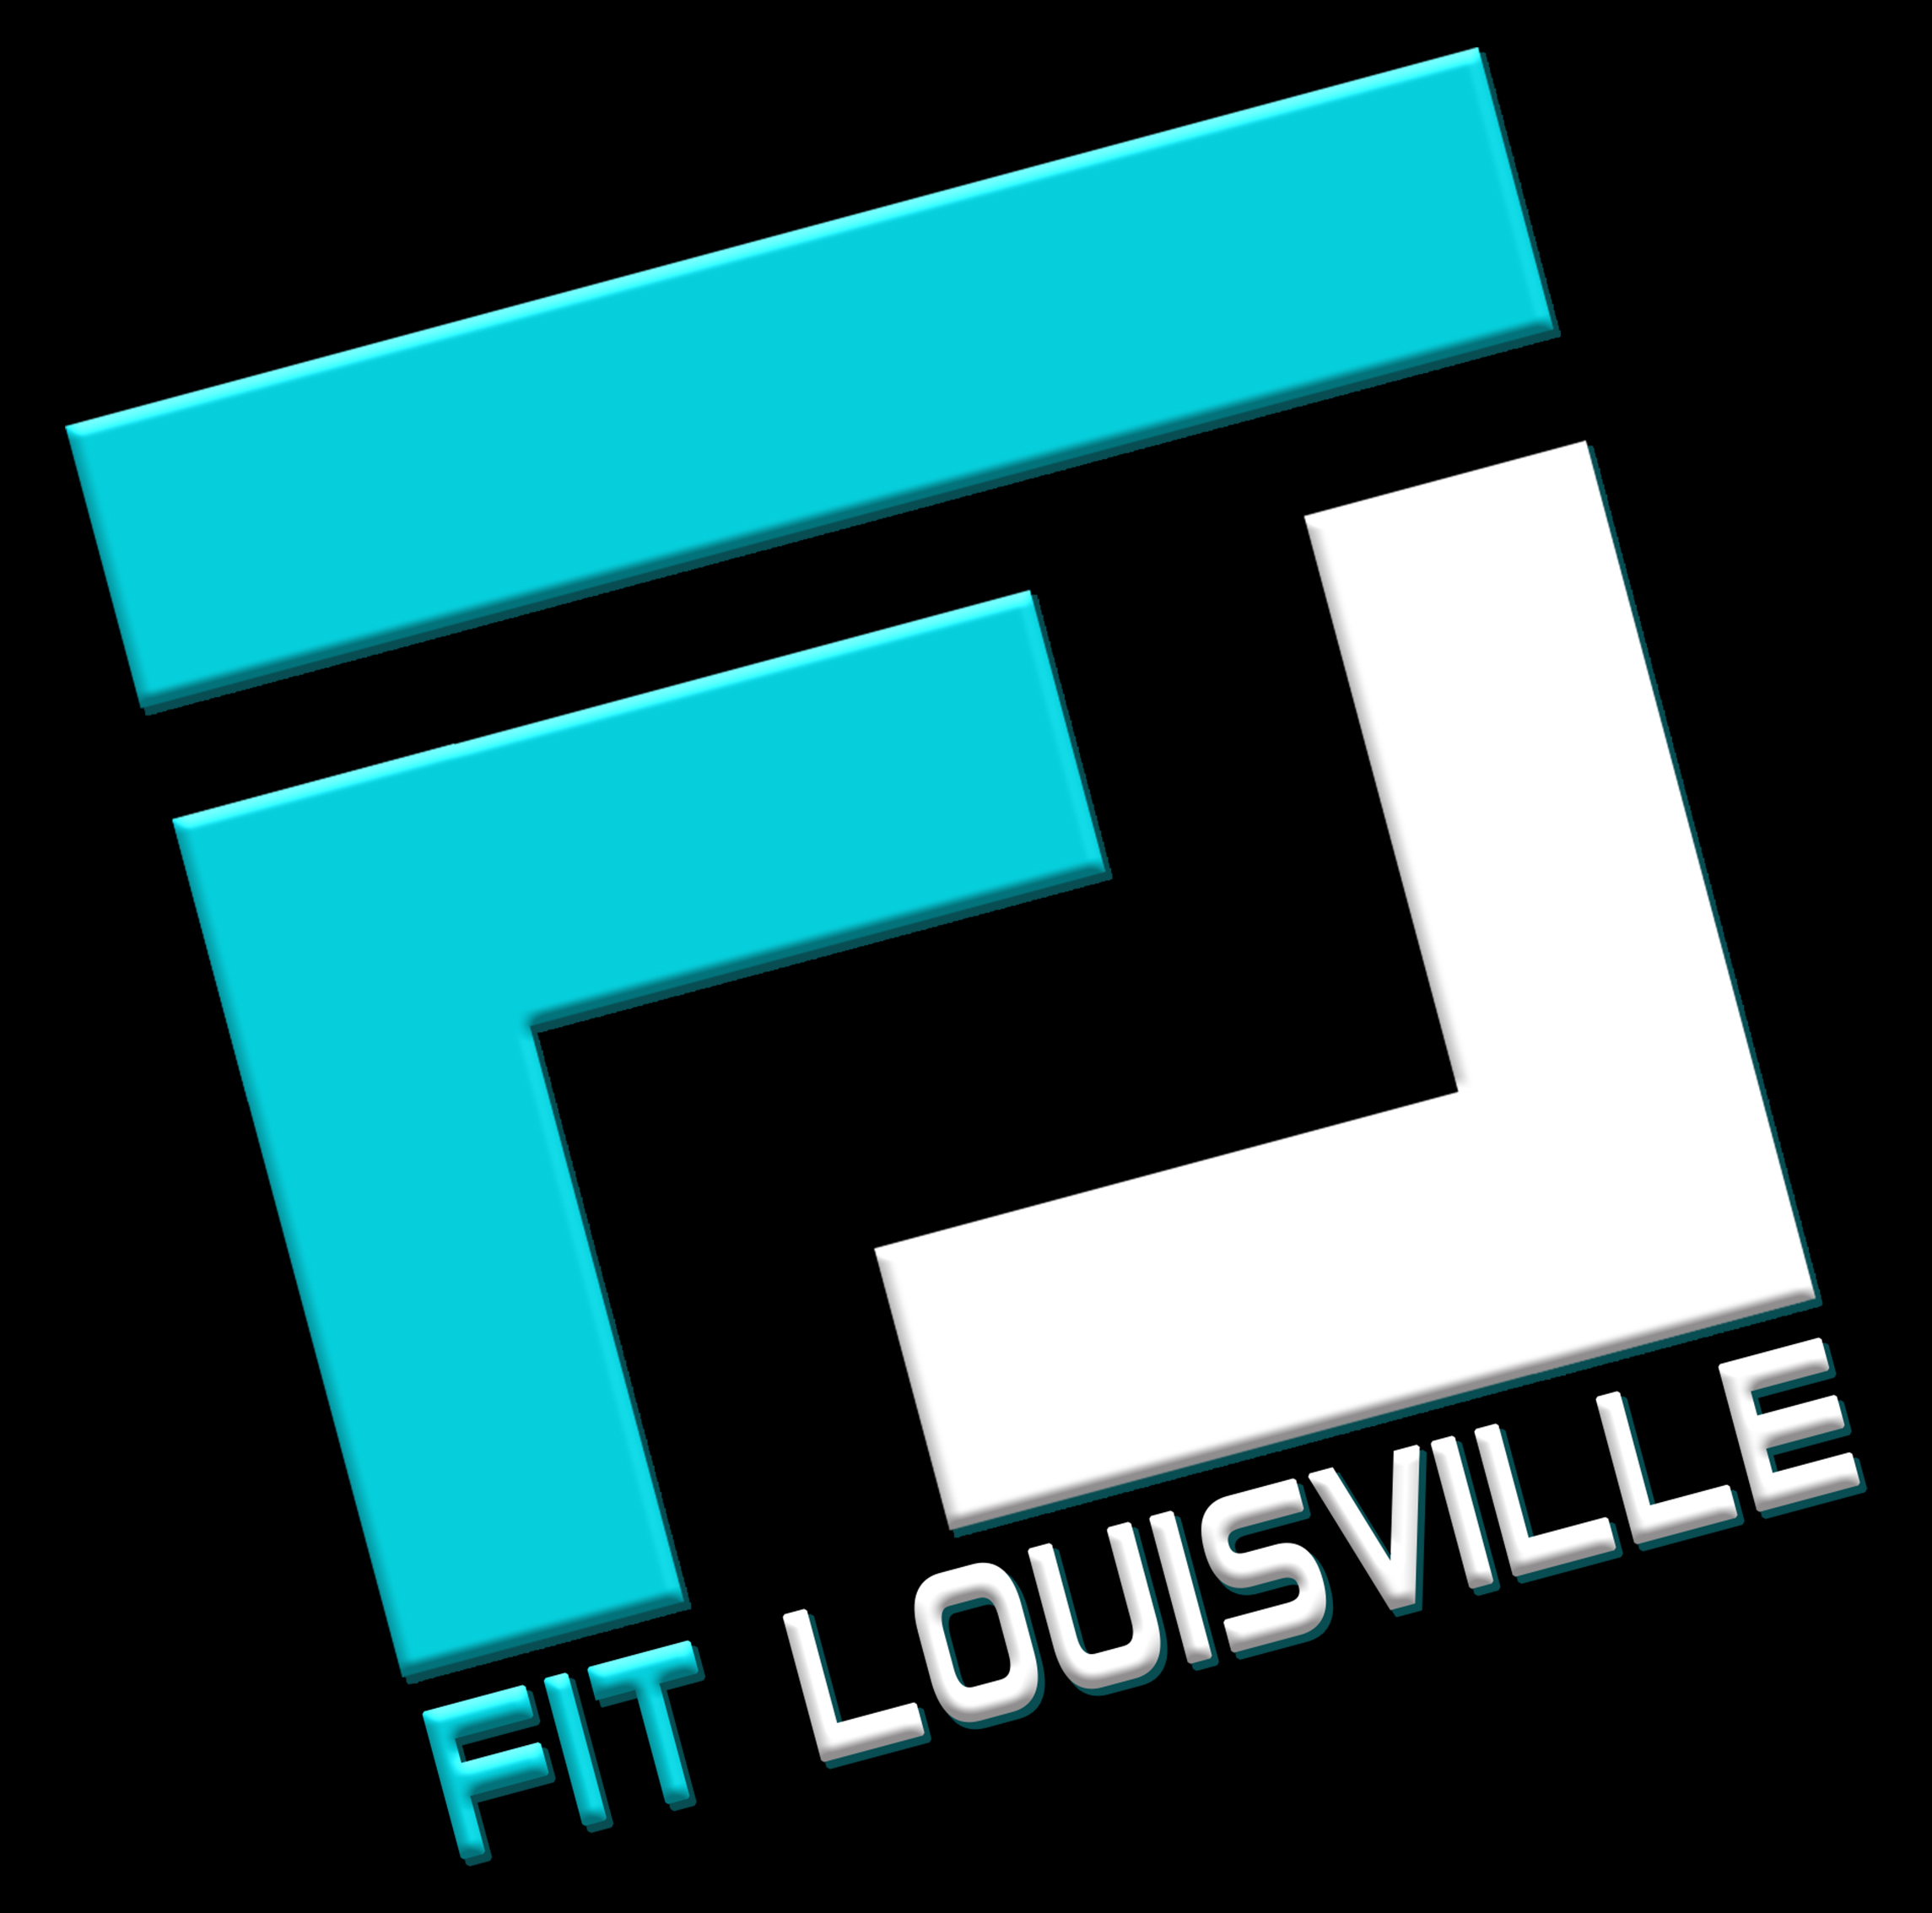 FIT Louisville logo